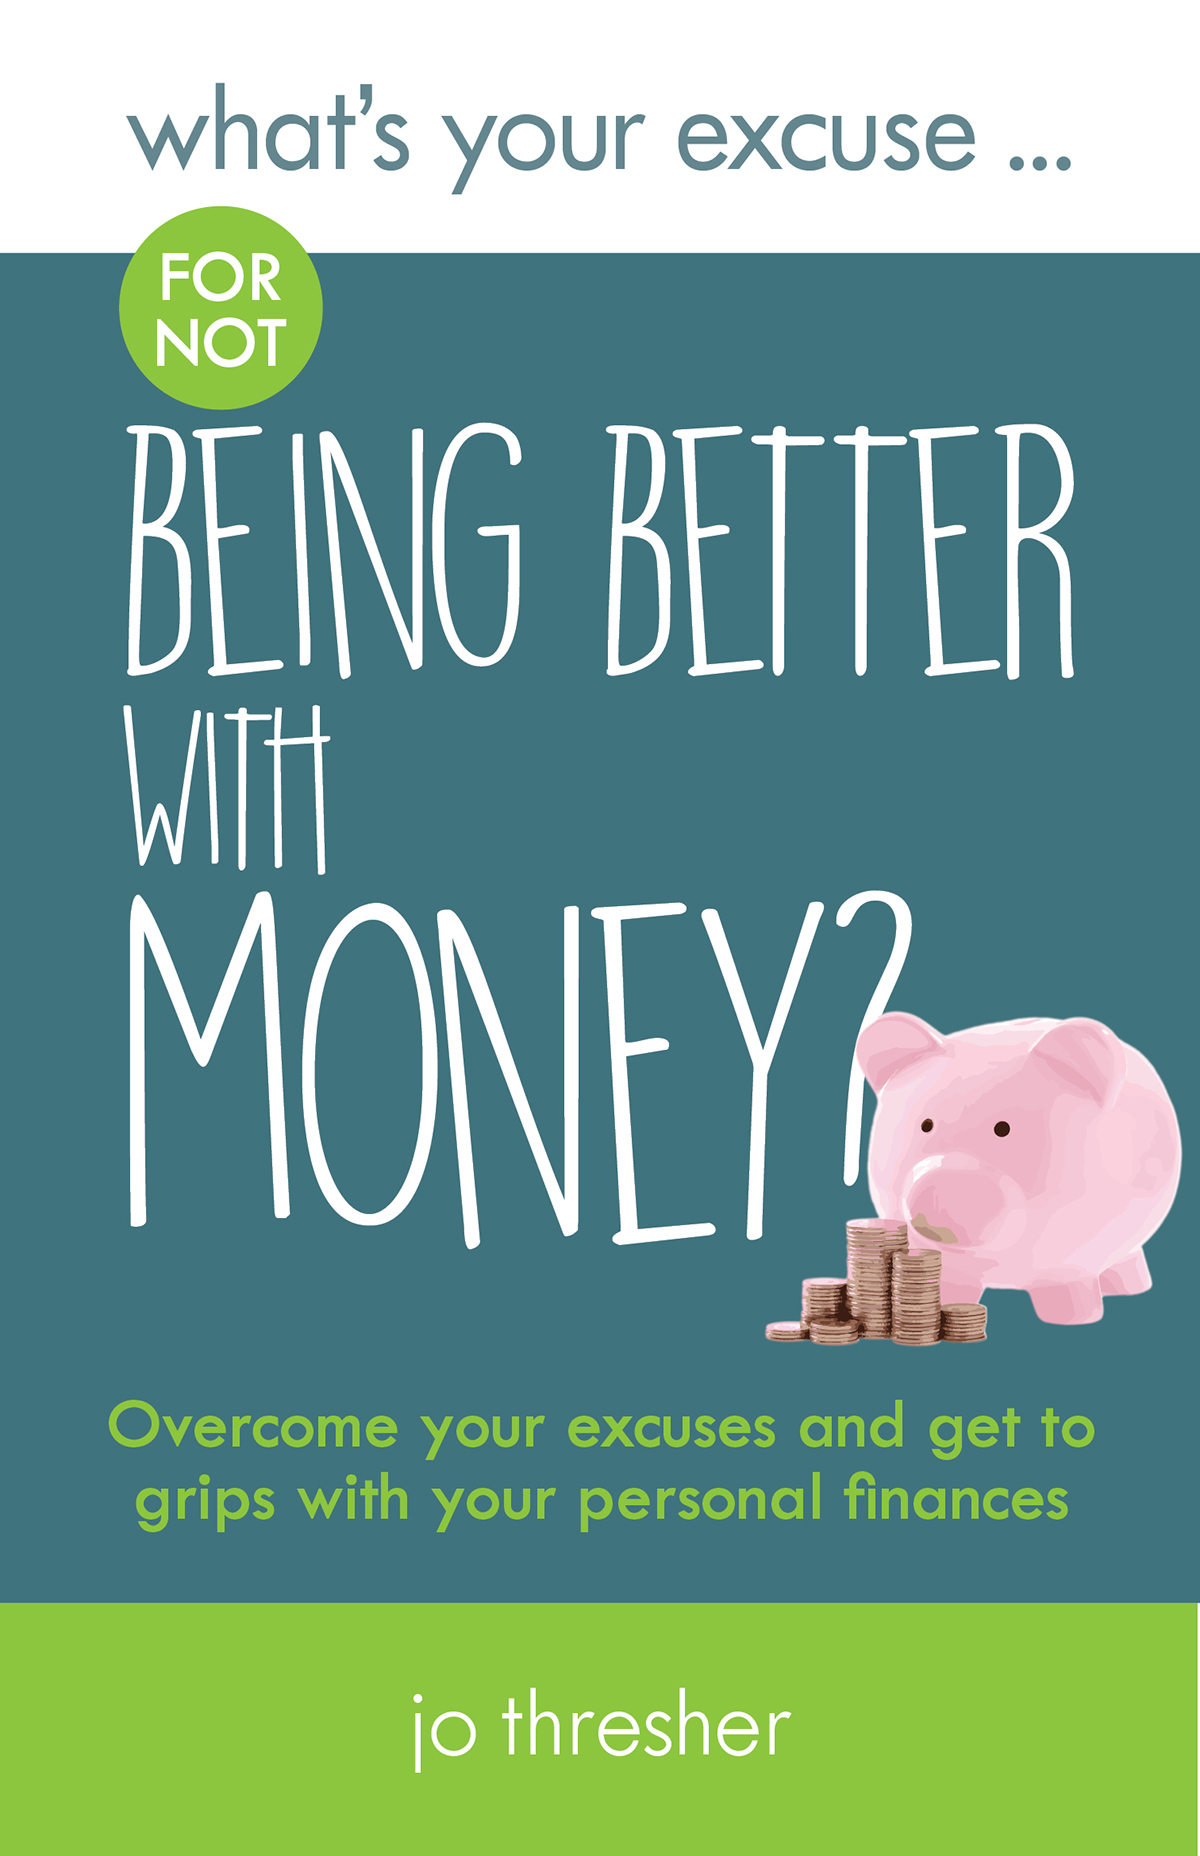 What's Your Excuse For Not Being Better With Money?